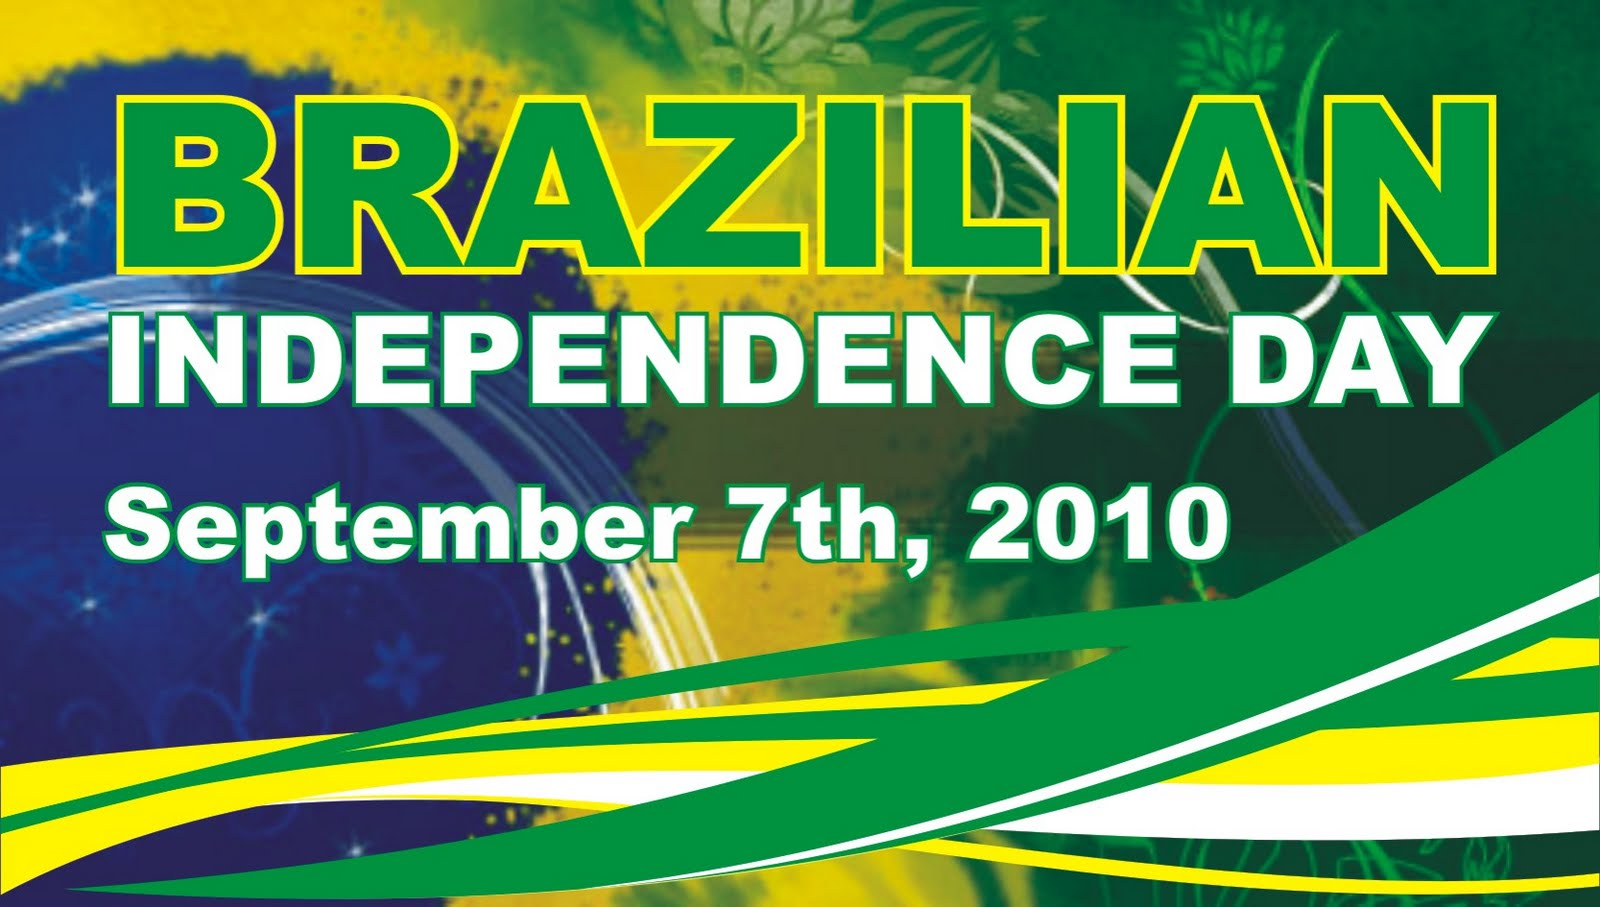 brazilian independence movement Brazilian masonry faced severe turmoila history of freemasonry in brazil contemporary history (1927 and proclaims the emancipation of brazilian masonry the grand orient of brazil was disowned in a public proclamation culminating in the assassination of the president of the province of paraíba.